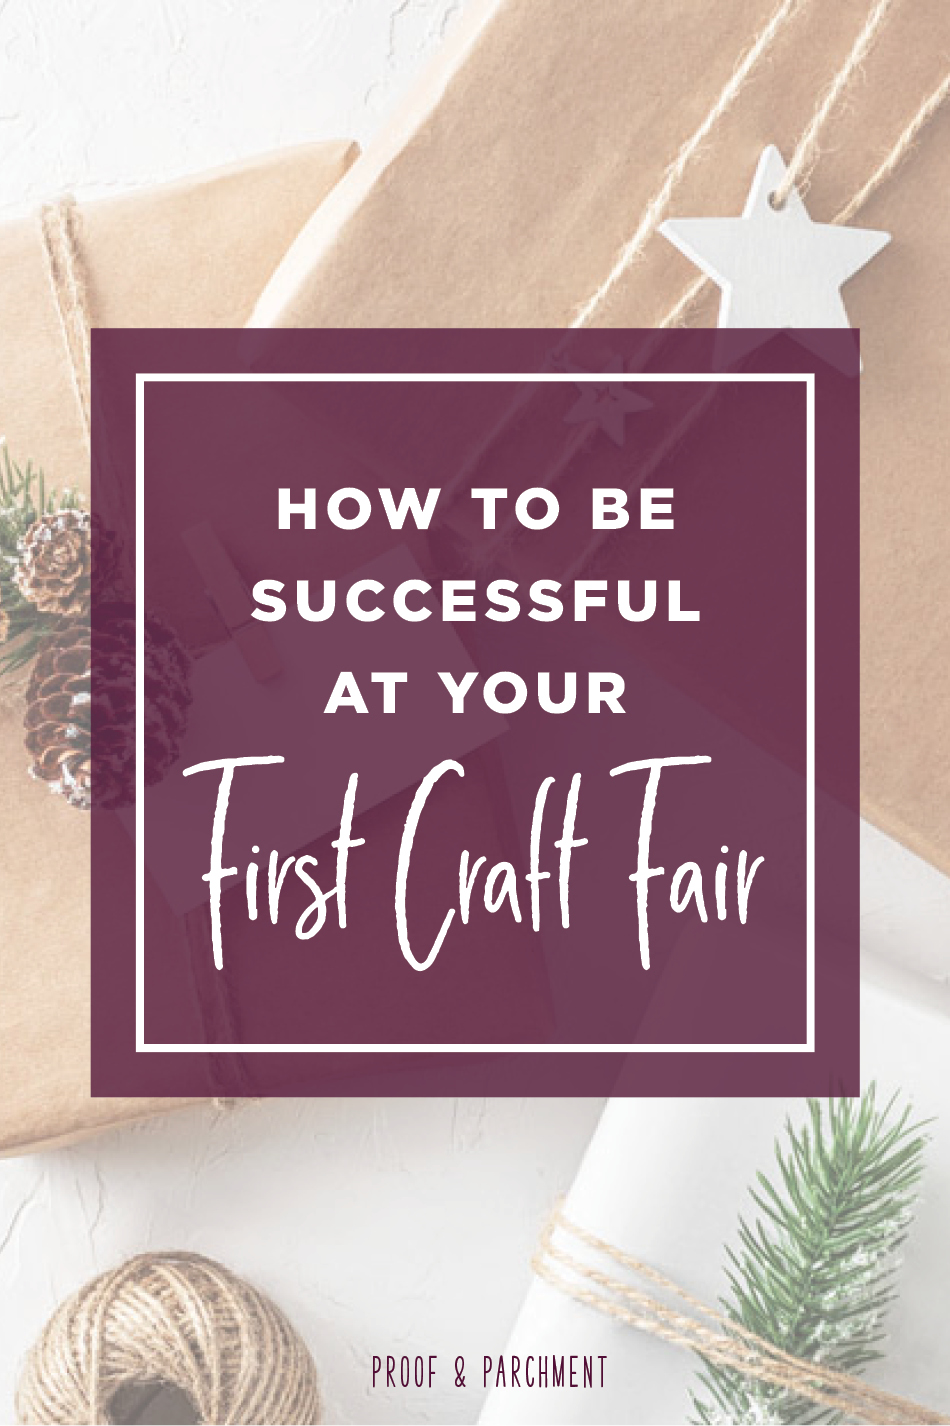 How to Be Successful at Your First Craft Fair